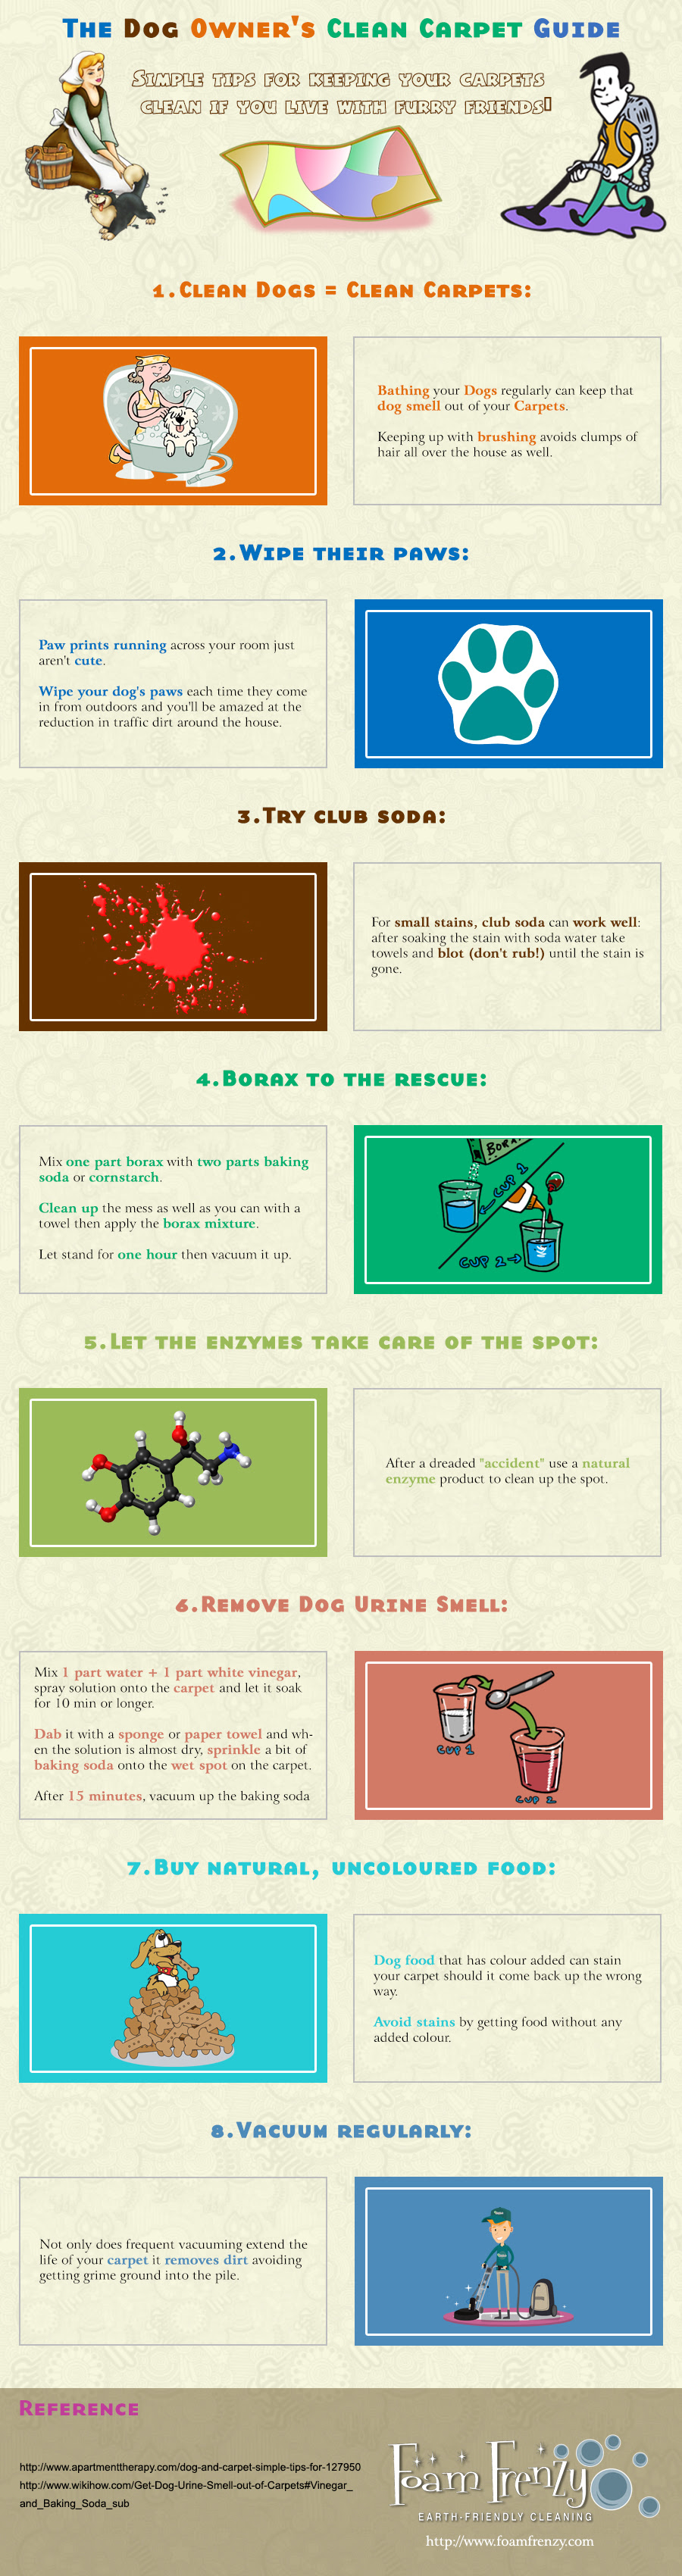 Dog Owner's Carpet Cleaning Guide infographic